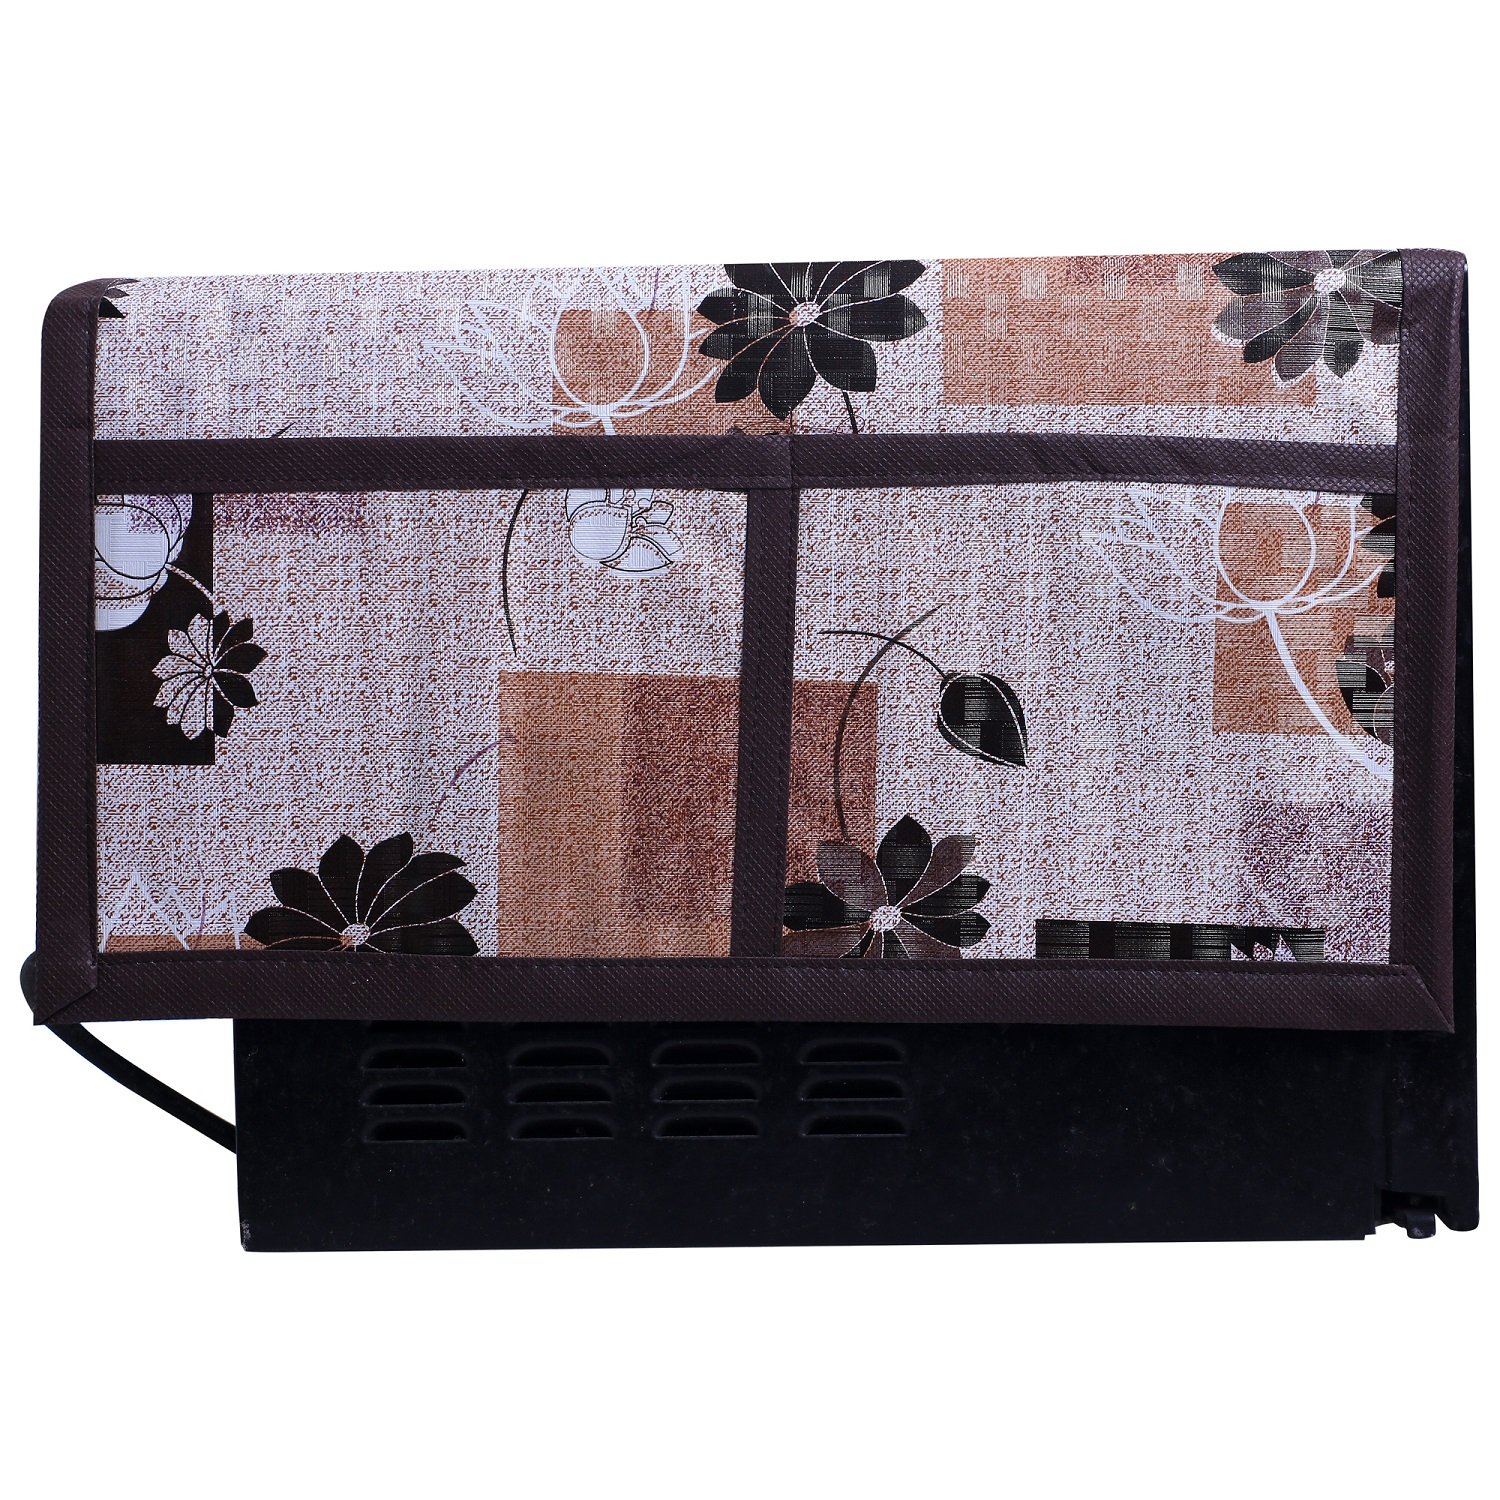 Kuber Industries Flower Design PVC Microwave Oven Top Cover 30 Liter with Utility 4 Pockets (Brown) - CTKTC40685